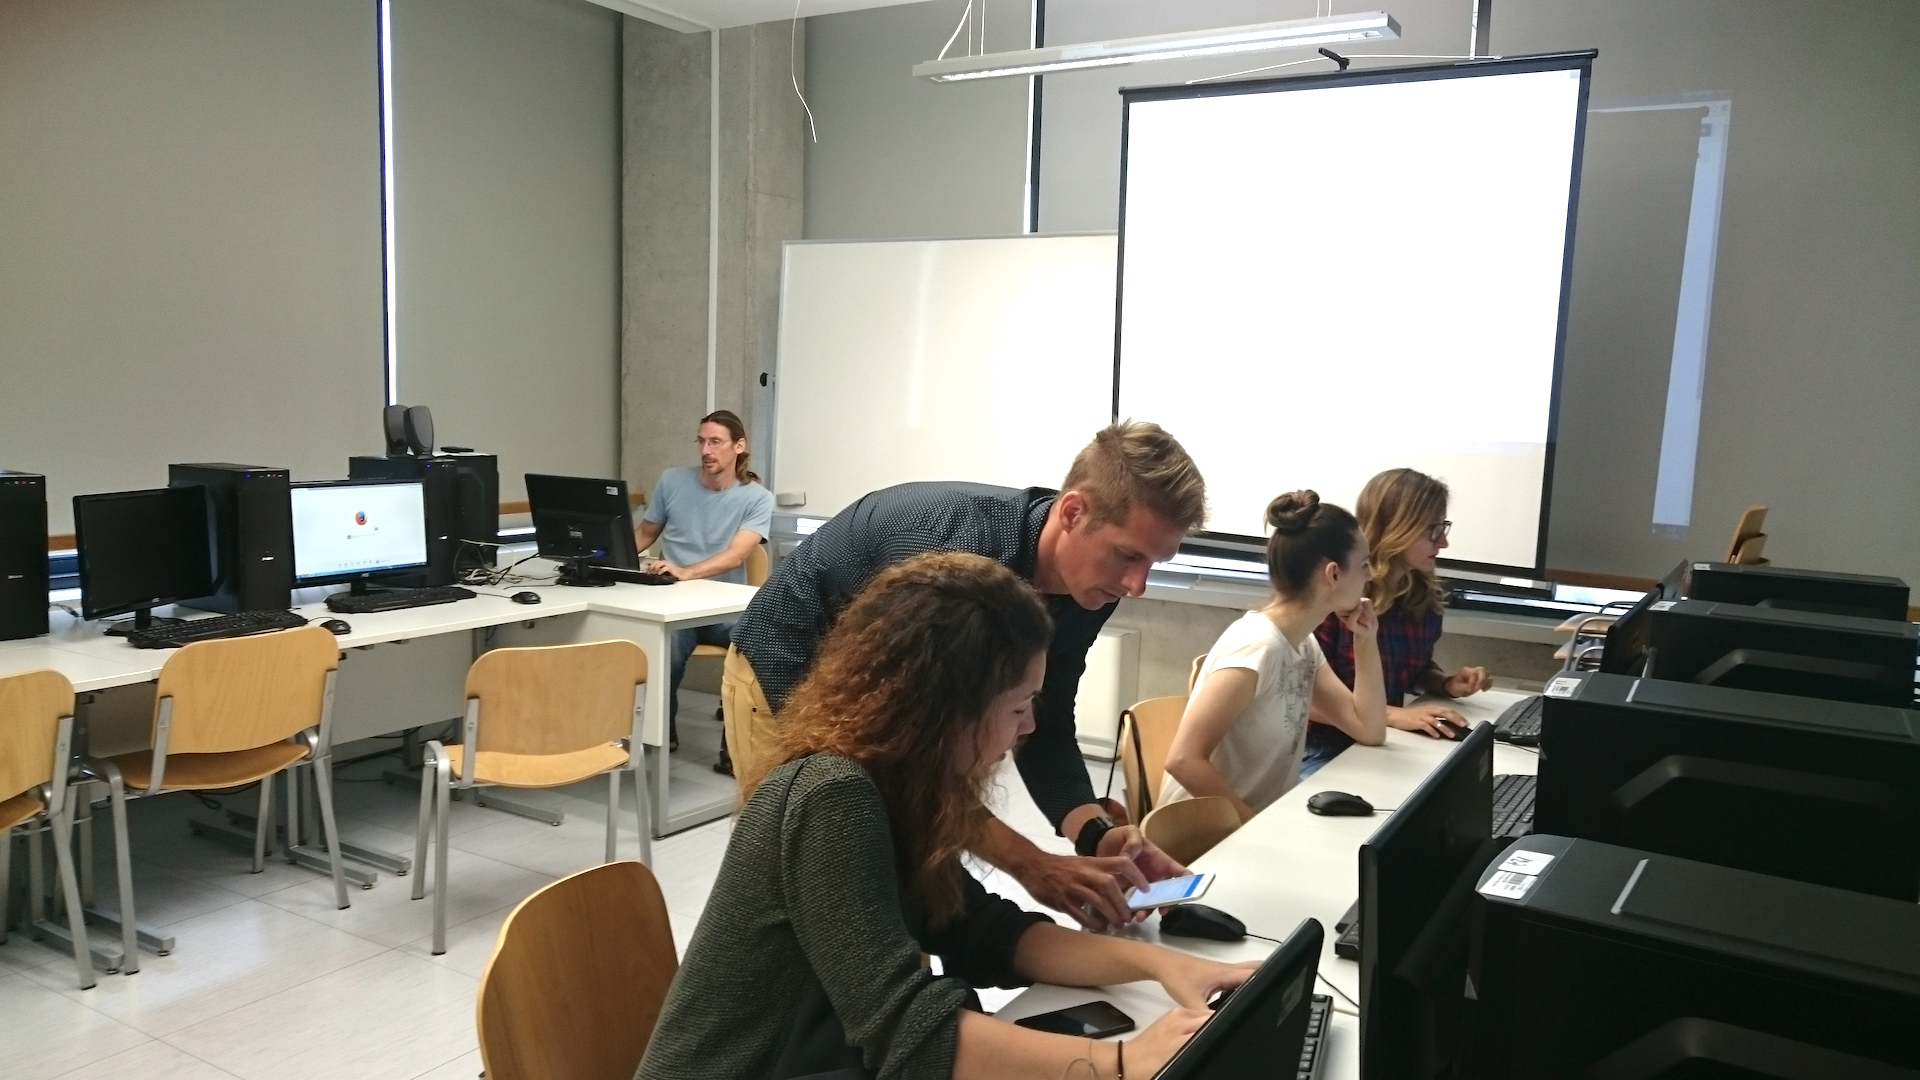 Dr. Arnaud Kurze (center), Montclair State University, conducting a workshop on digital methods at the University of Rijeka, Croatia.